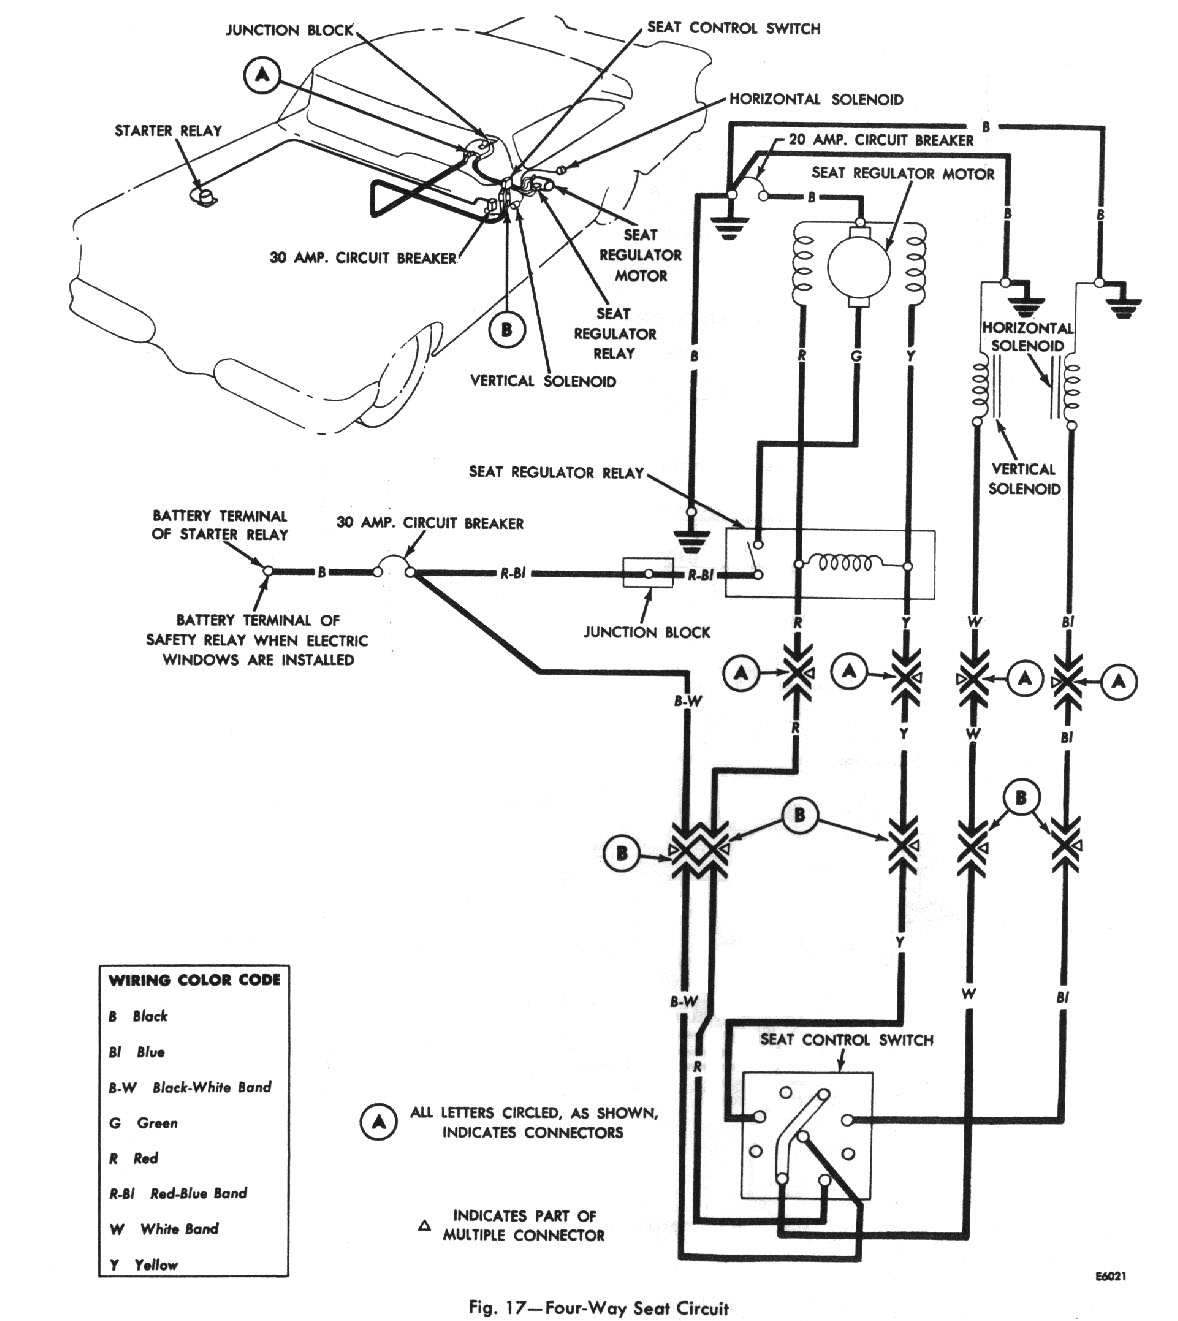 9 Lead Motor Wiring Diagram Dual Voltage